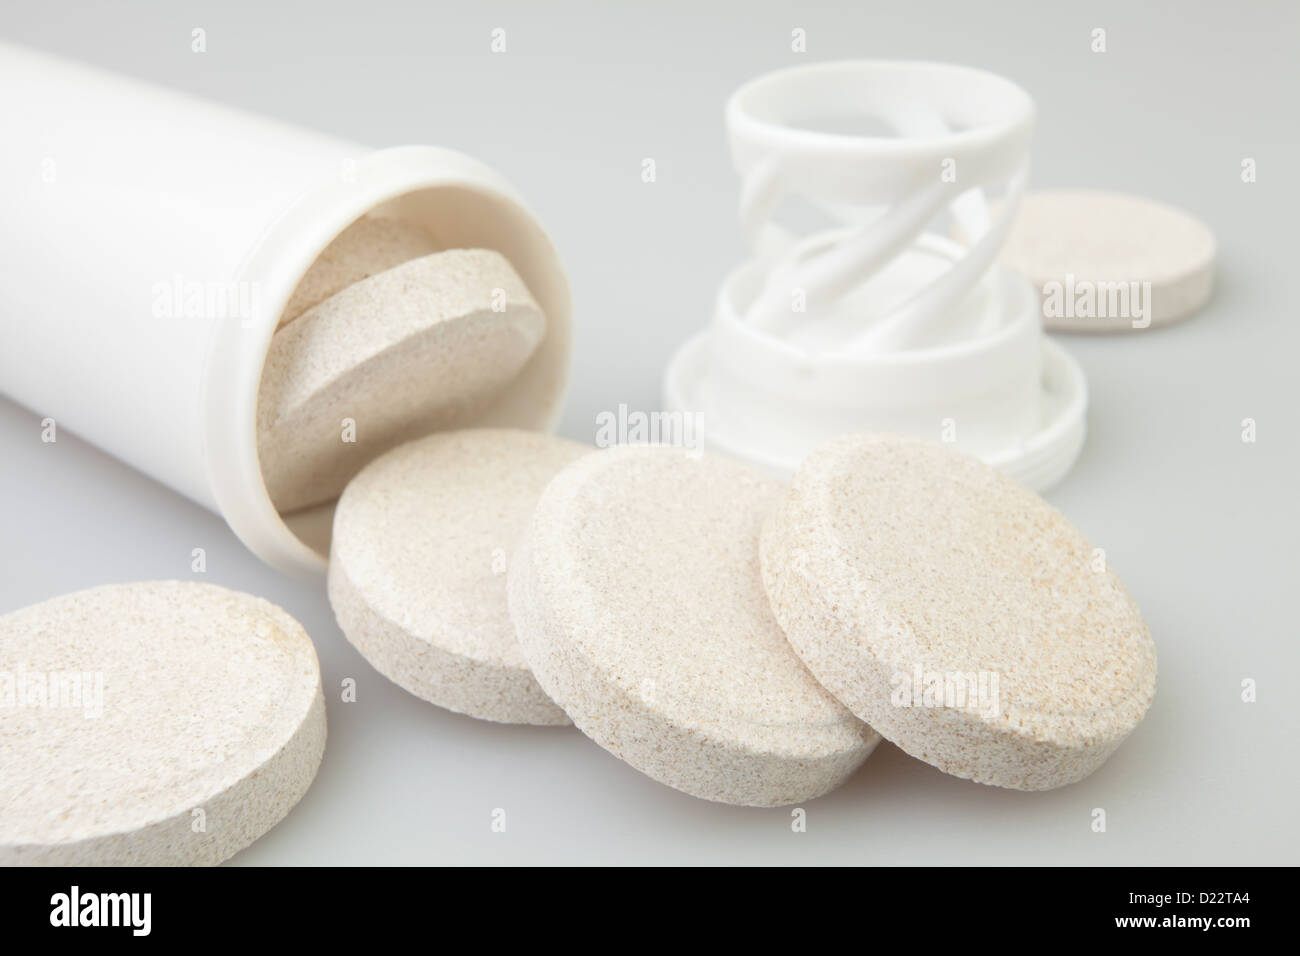 vitamin pill tablet package on gray - Stock Image